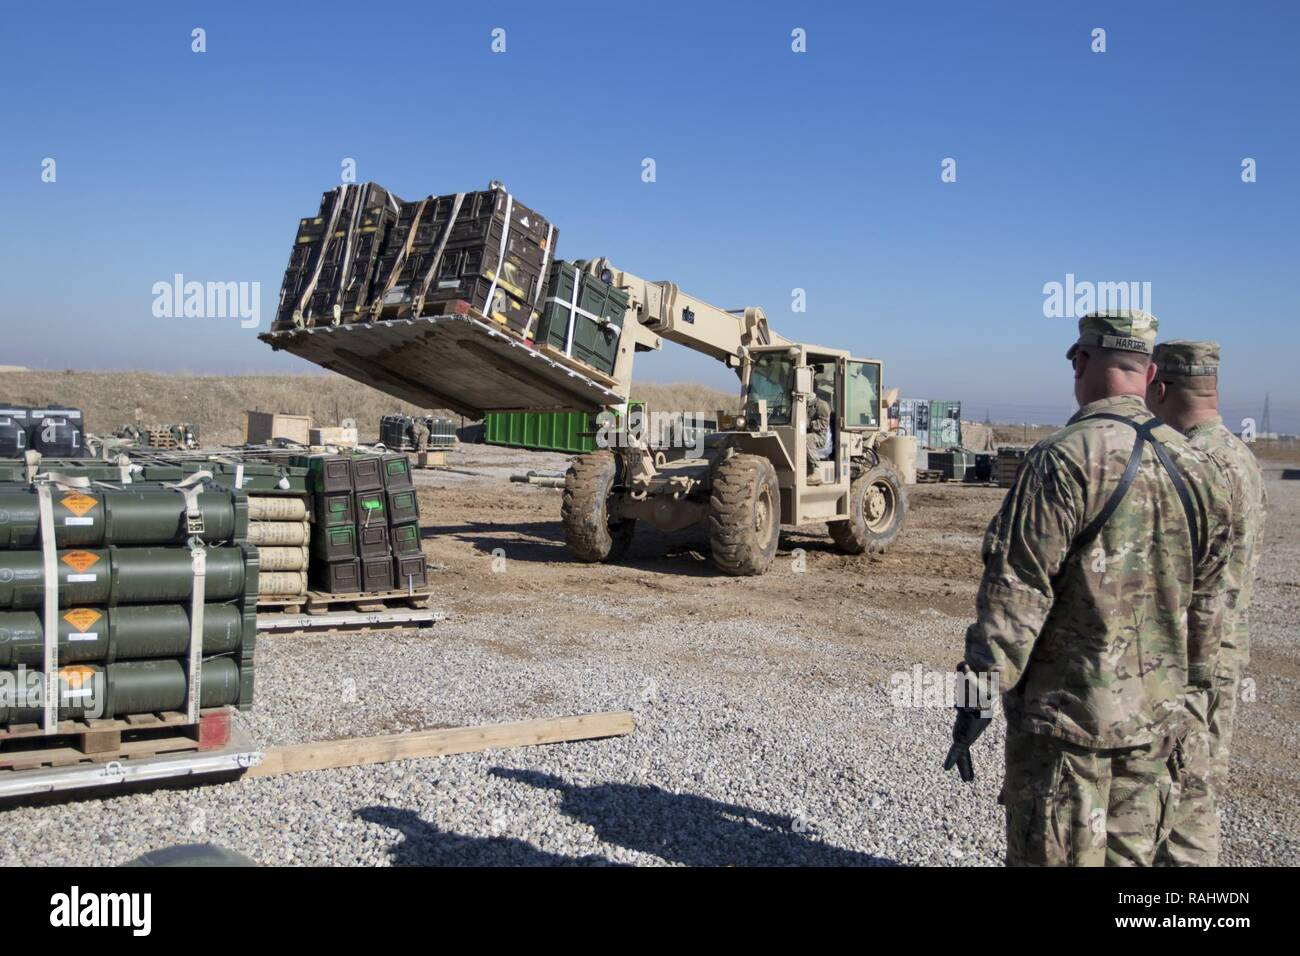 Brig. Gen. Robert D. Harter, deputy commanding general of the 1st Sustainment Command (Theater) / commanding general of the 316th Sustainment Command (Expeditionary), inspects the multi-national ammunition supply depot at Erbil, Iraq, on February 3, 2017. - Stock Image